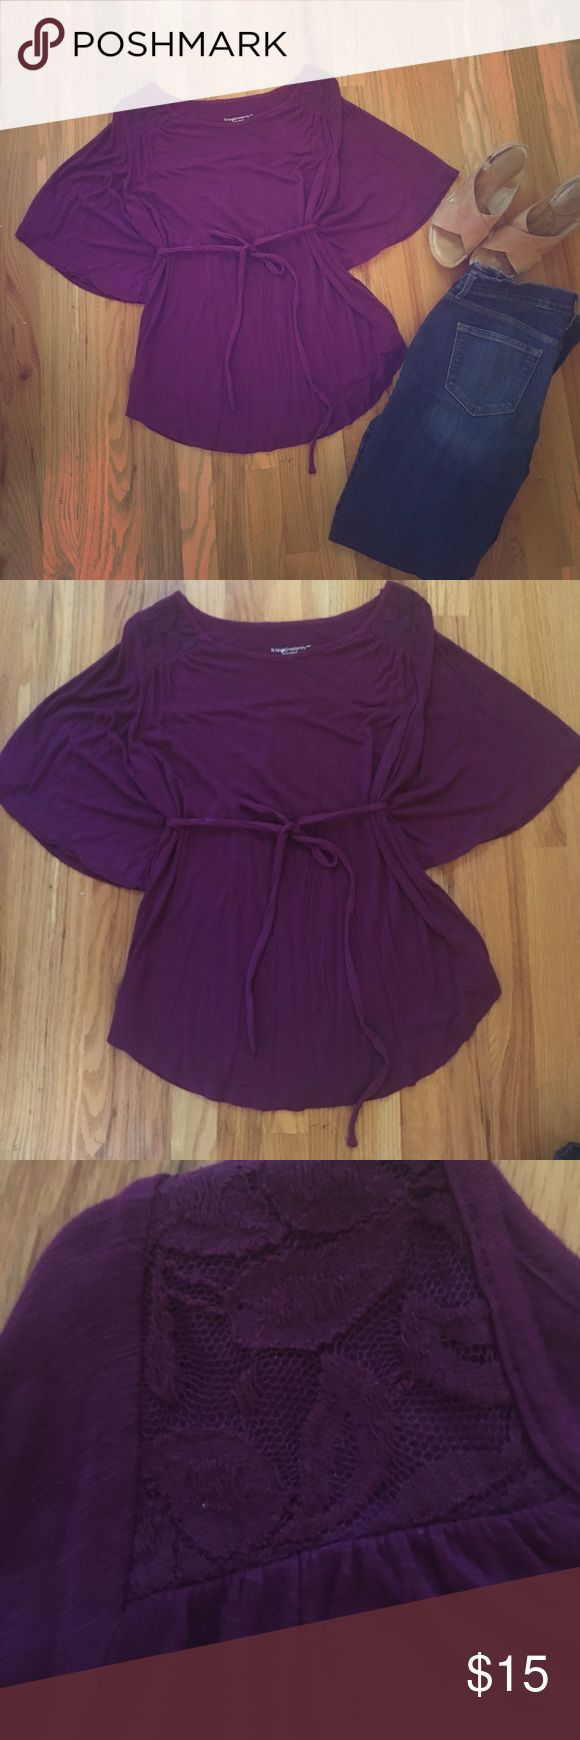 NWOT Flattering Batwing  and lace top with sash NWOT Beautiful and flattering purple batwing maternity top with sash and lovely lace detailing. Absolutely stunning! Great confidence booster when you are feeling like an elephant in late pregnancy😉 Liz Lange Tops Blouses